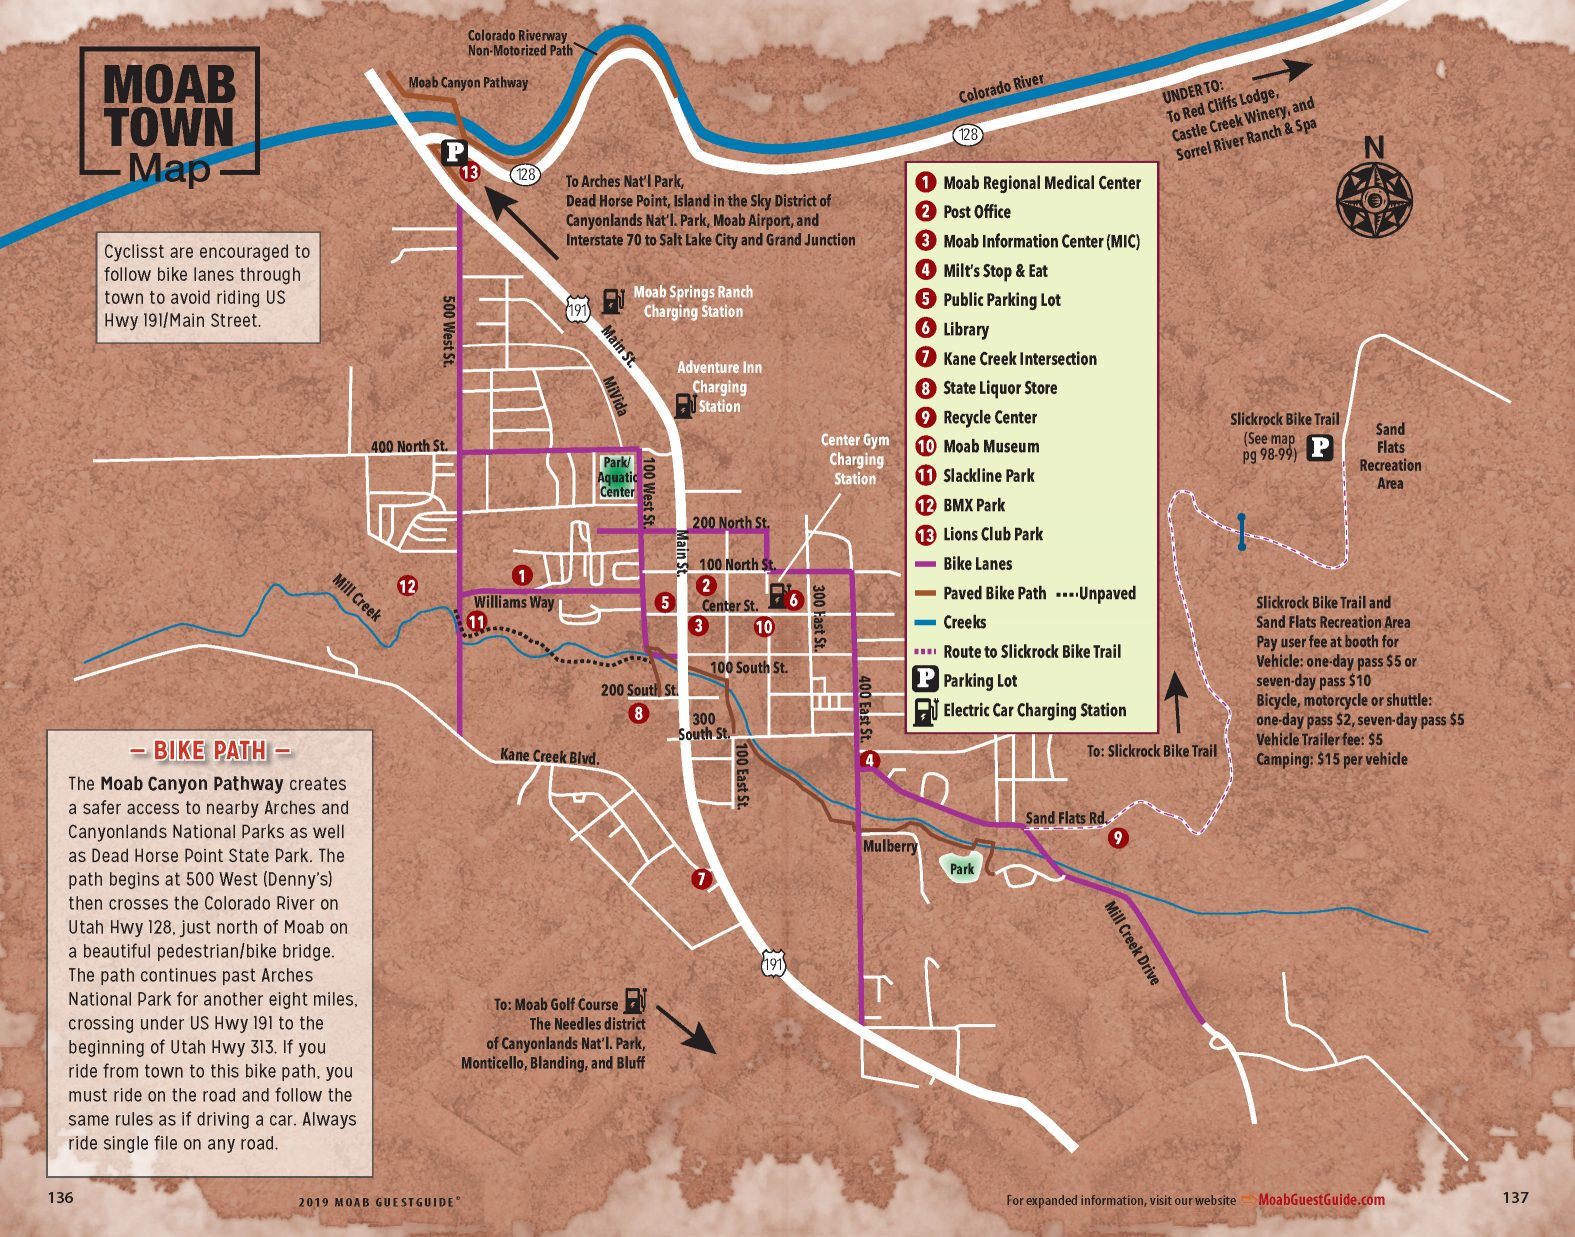 Moab Town and Area Maps | Free GuestGuide Publications